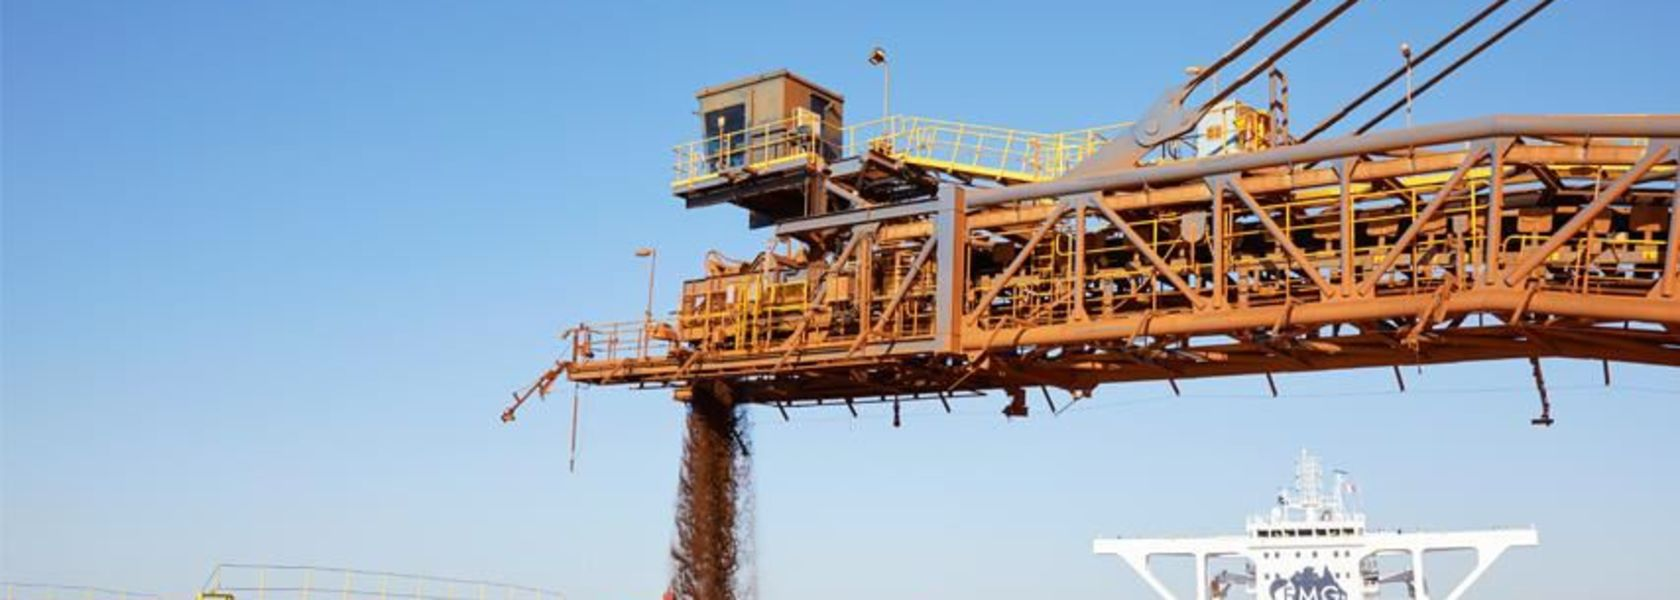 Iron ore spreads closing: FMG